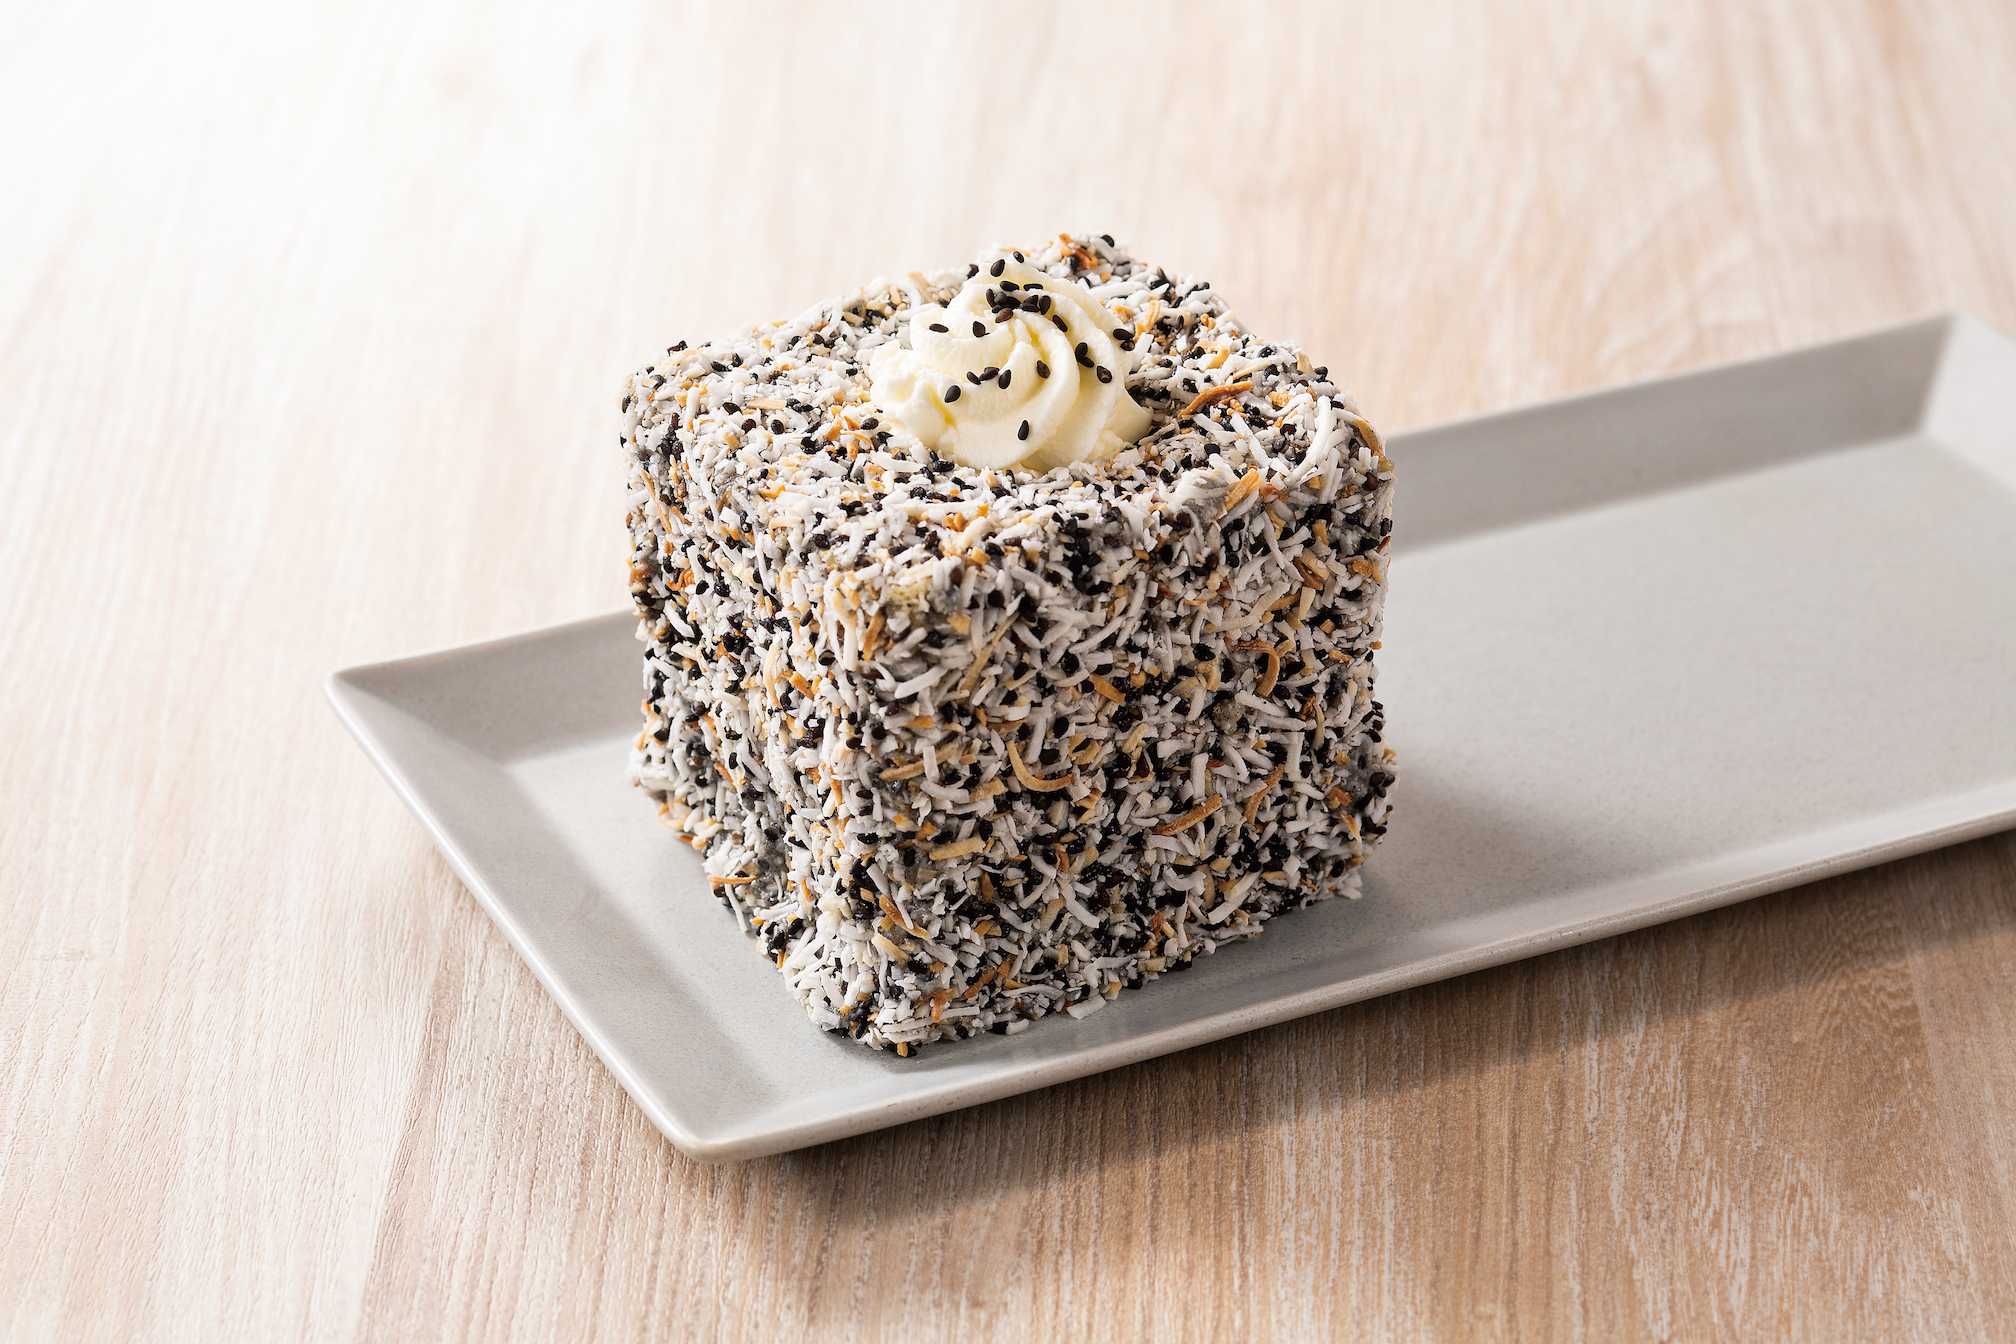 Lamington Black Sesame.jpg